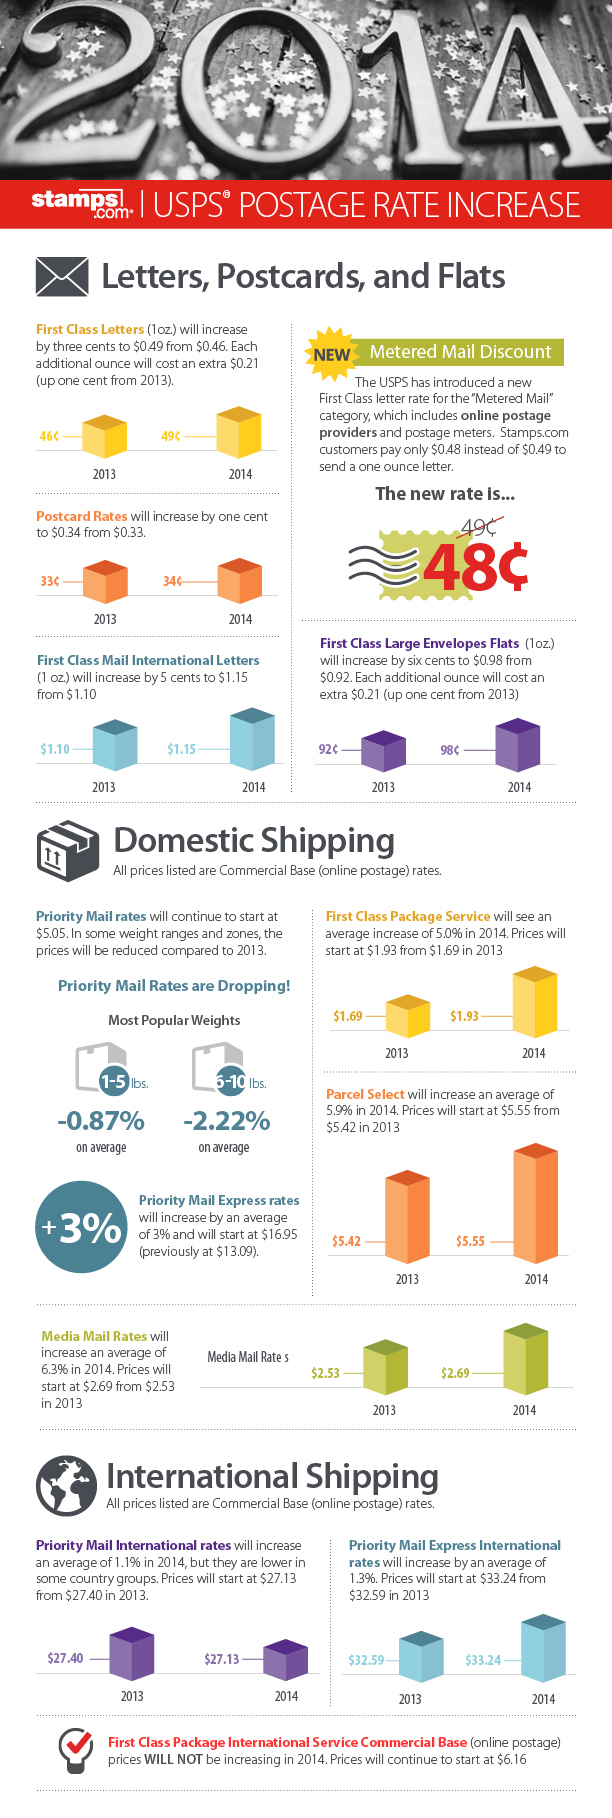 2014 USPS Postage Rate Increase - Infographic by Stamps.com